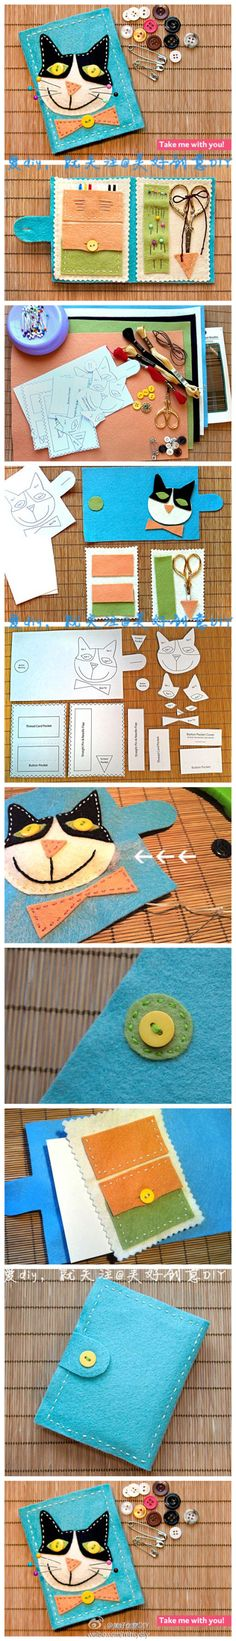 .kitty sewing case